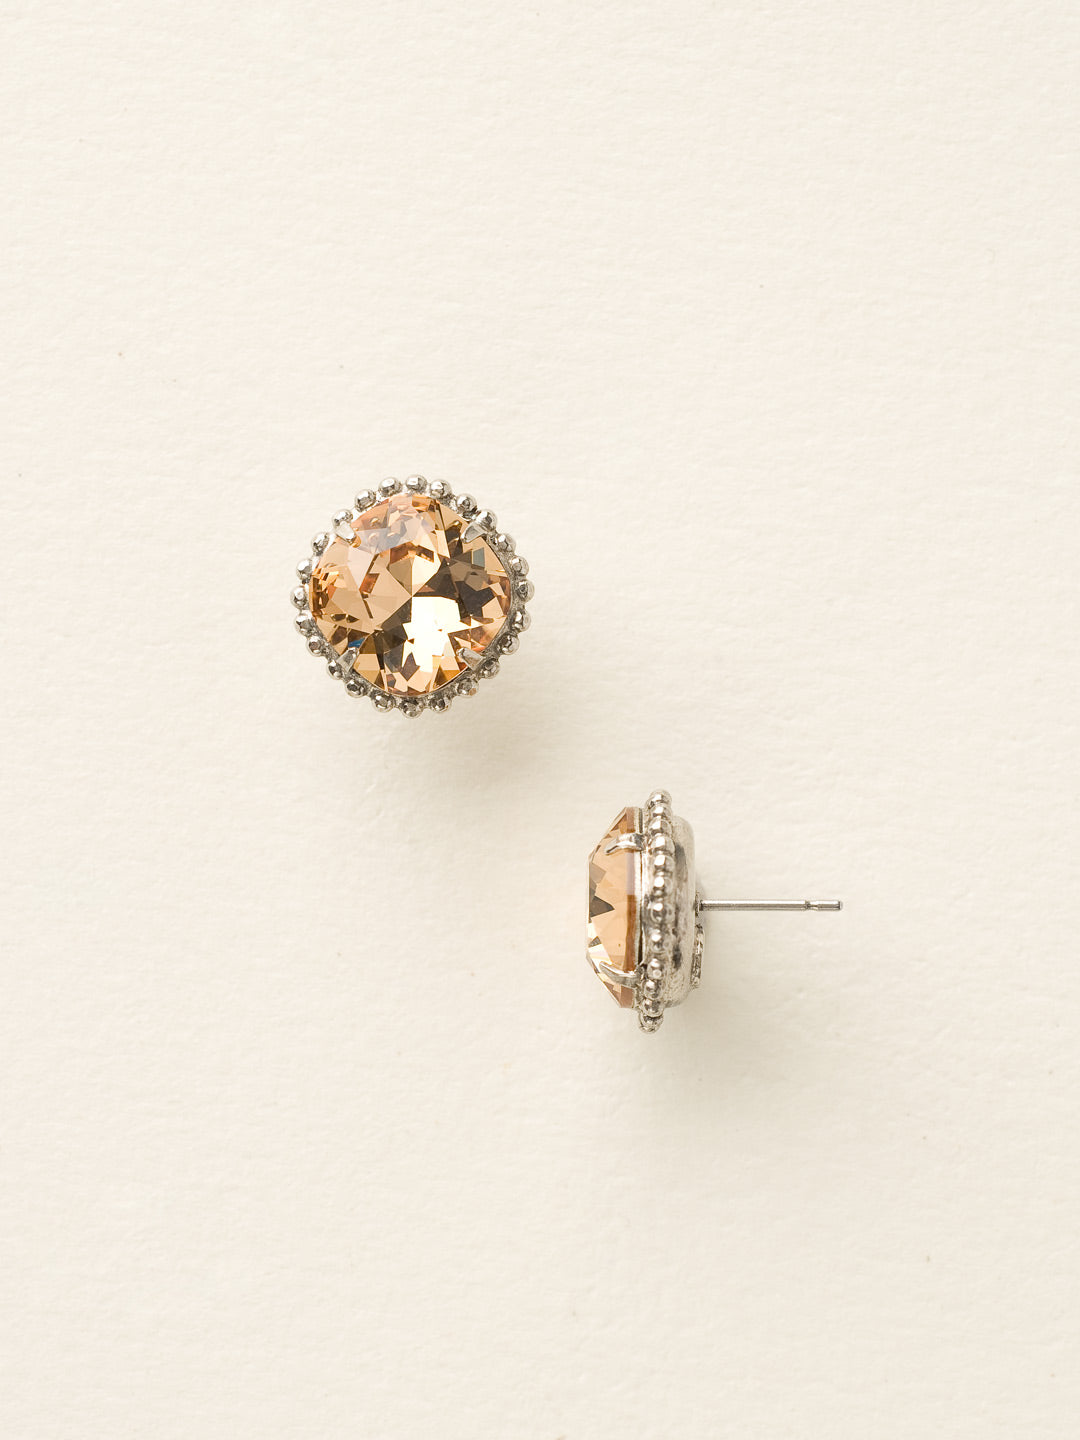 Cushion-Cut Solitaire Stud Earrings - EBX10ASLC